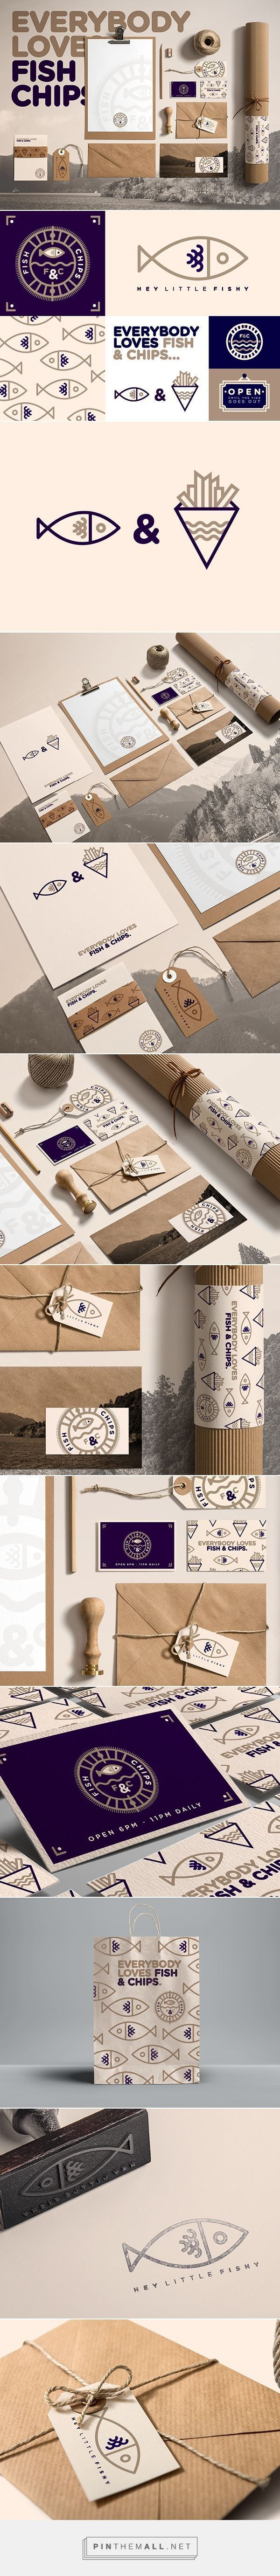 Everybody Loves Fish & Chips identity packaging branding on Behance by STUDIOJQ ™ curated by Packaging Diva. Who want's some fish and chips now?